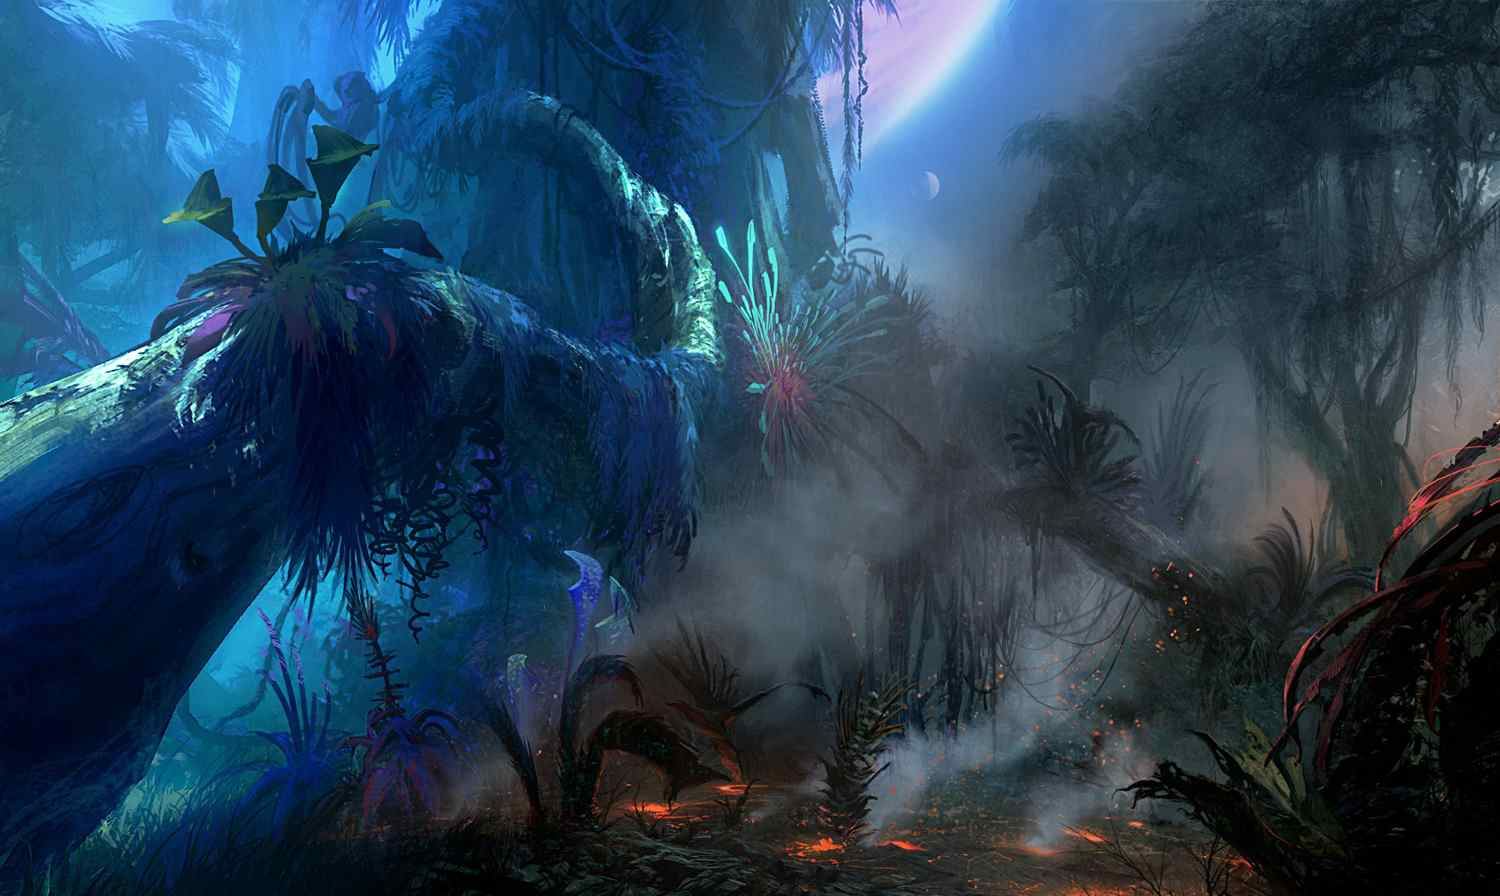 avatar backgrounds - wallpaper cave